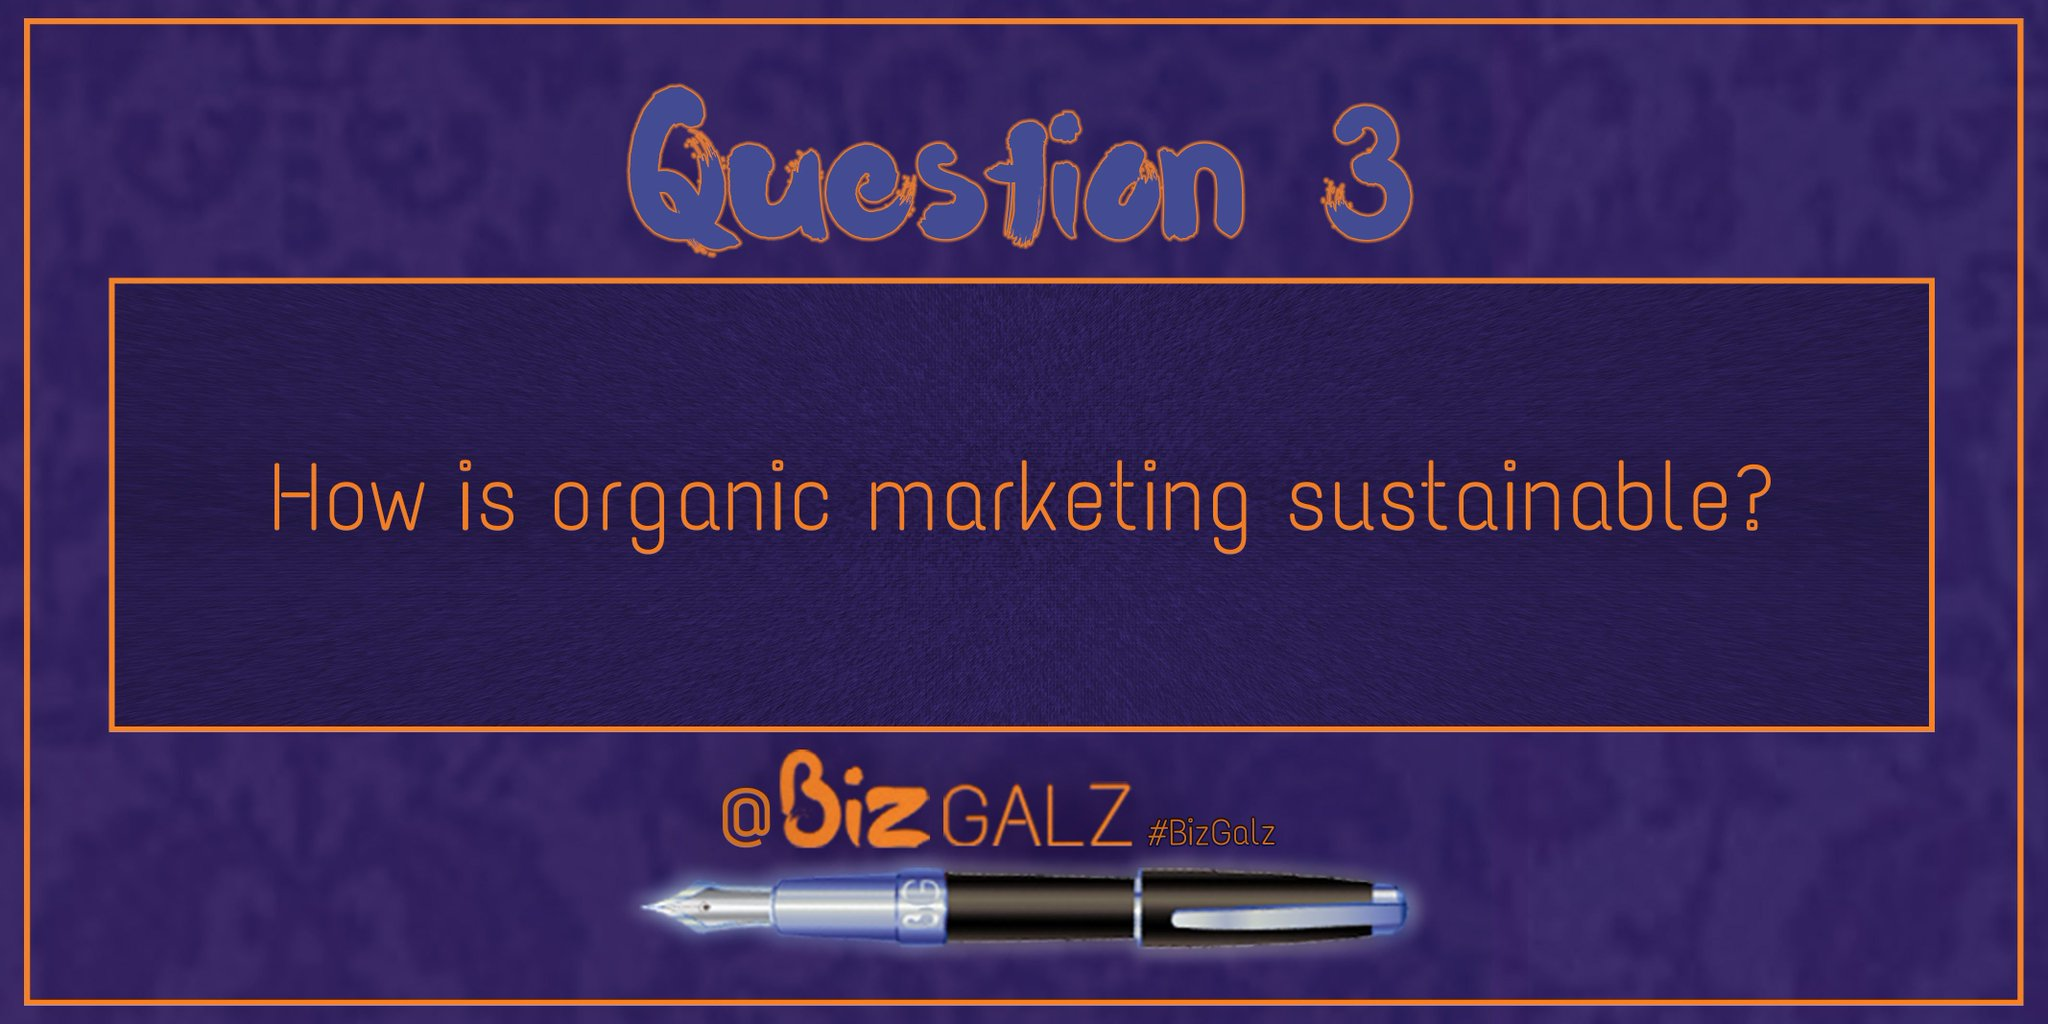 Q3 How is #OrganicMarketing sustainable? #BizGalz https://t.co/75lBZzmW6h